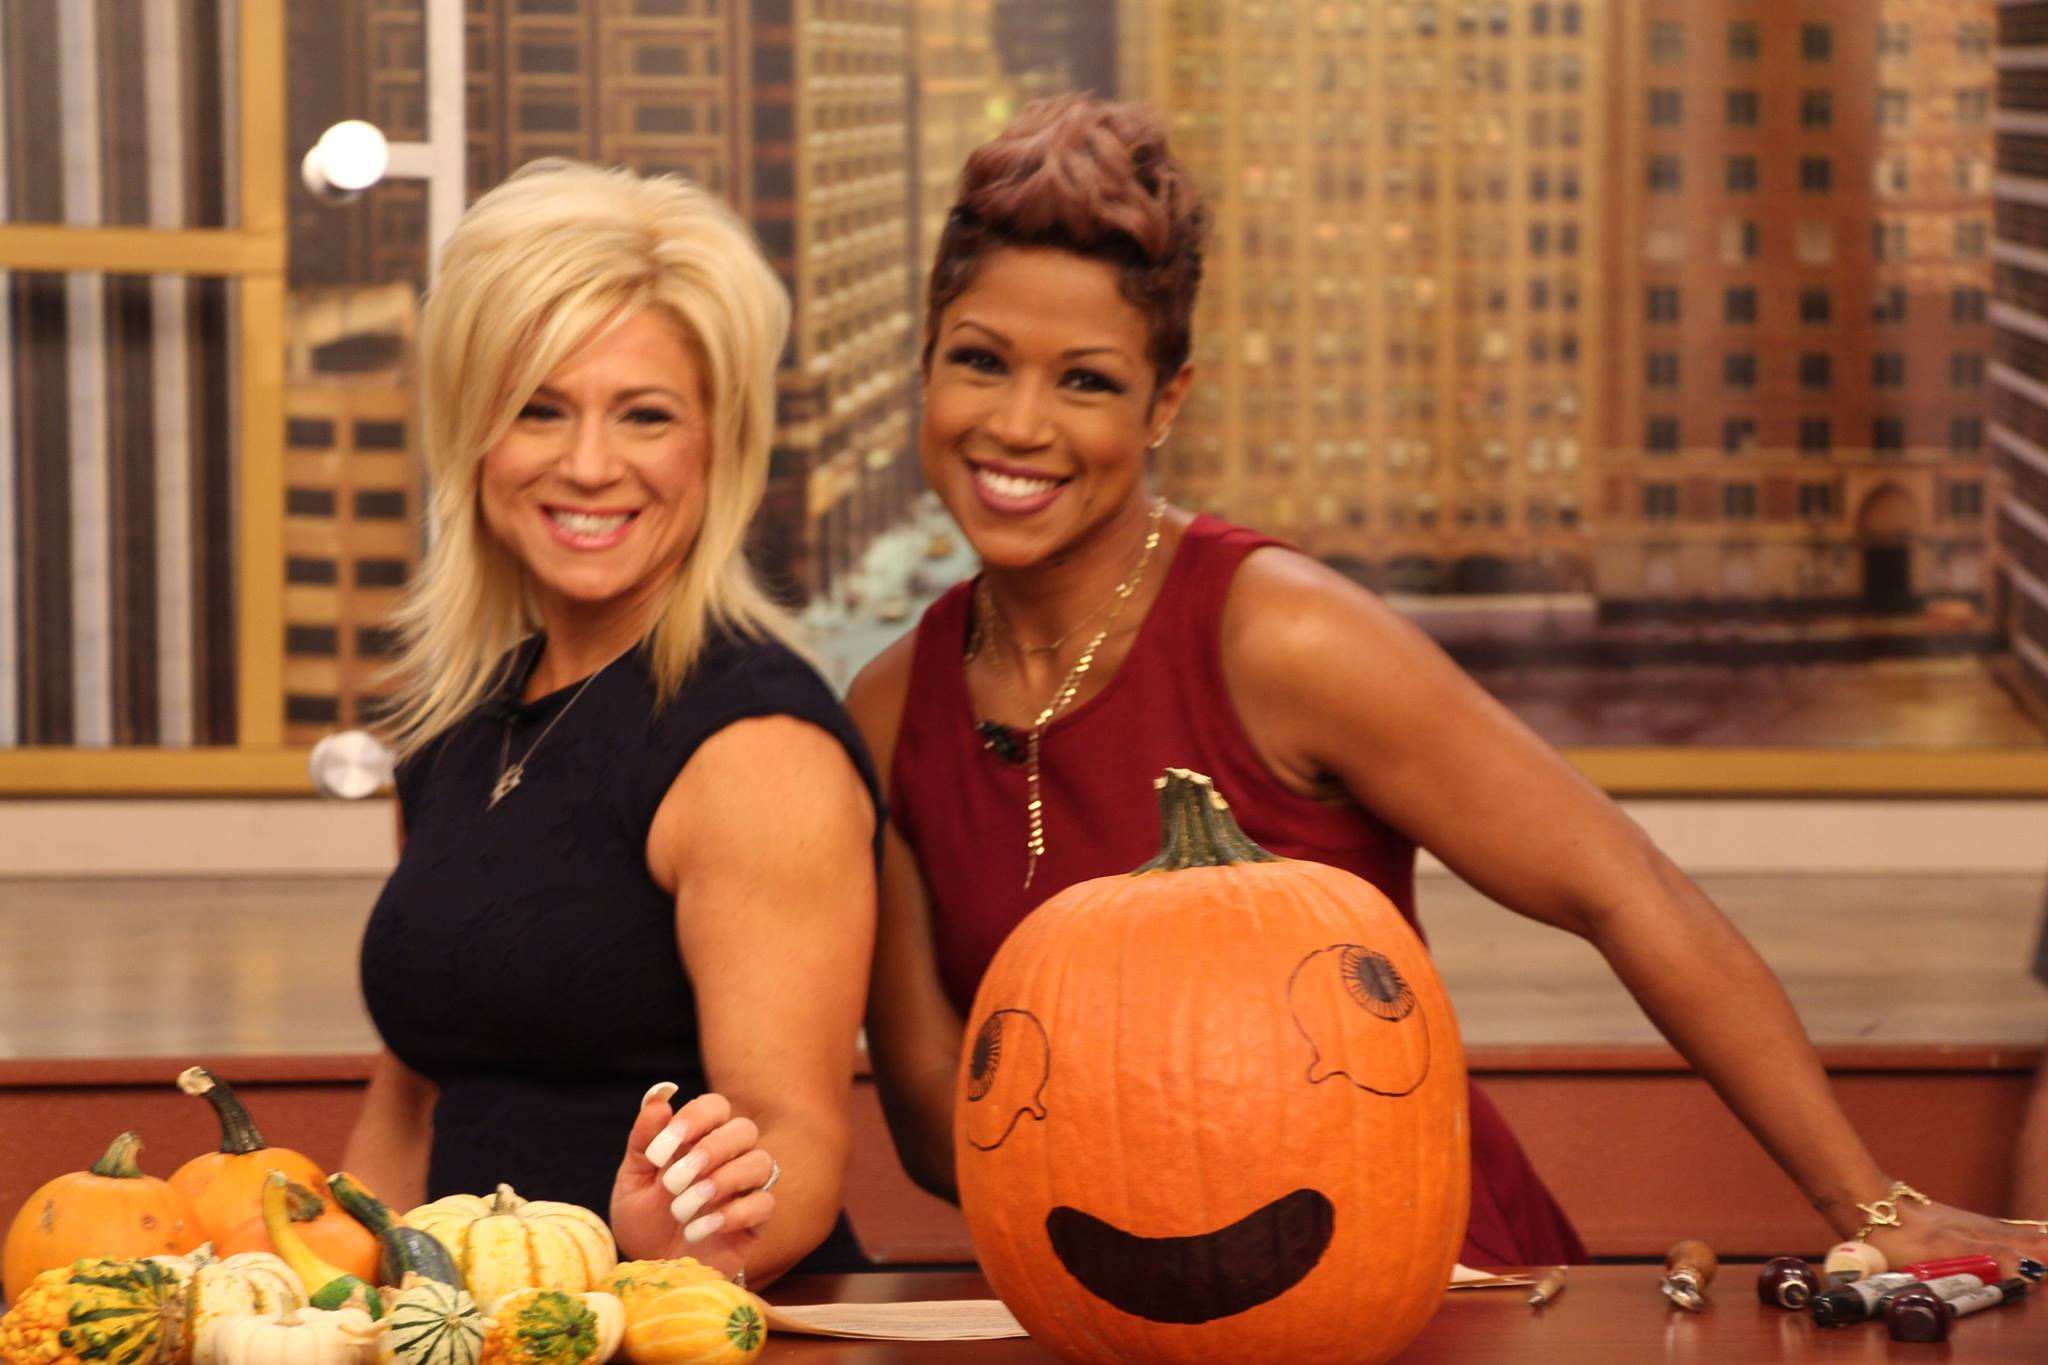 I Loved co-hosting Windy City Live